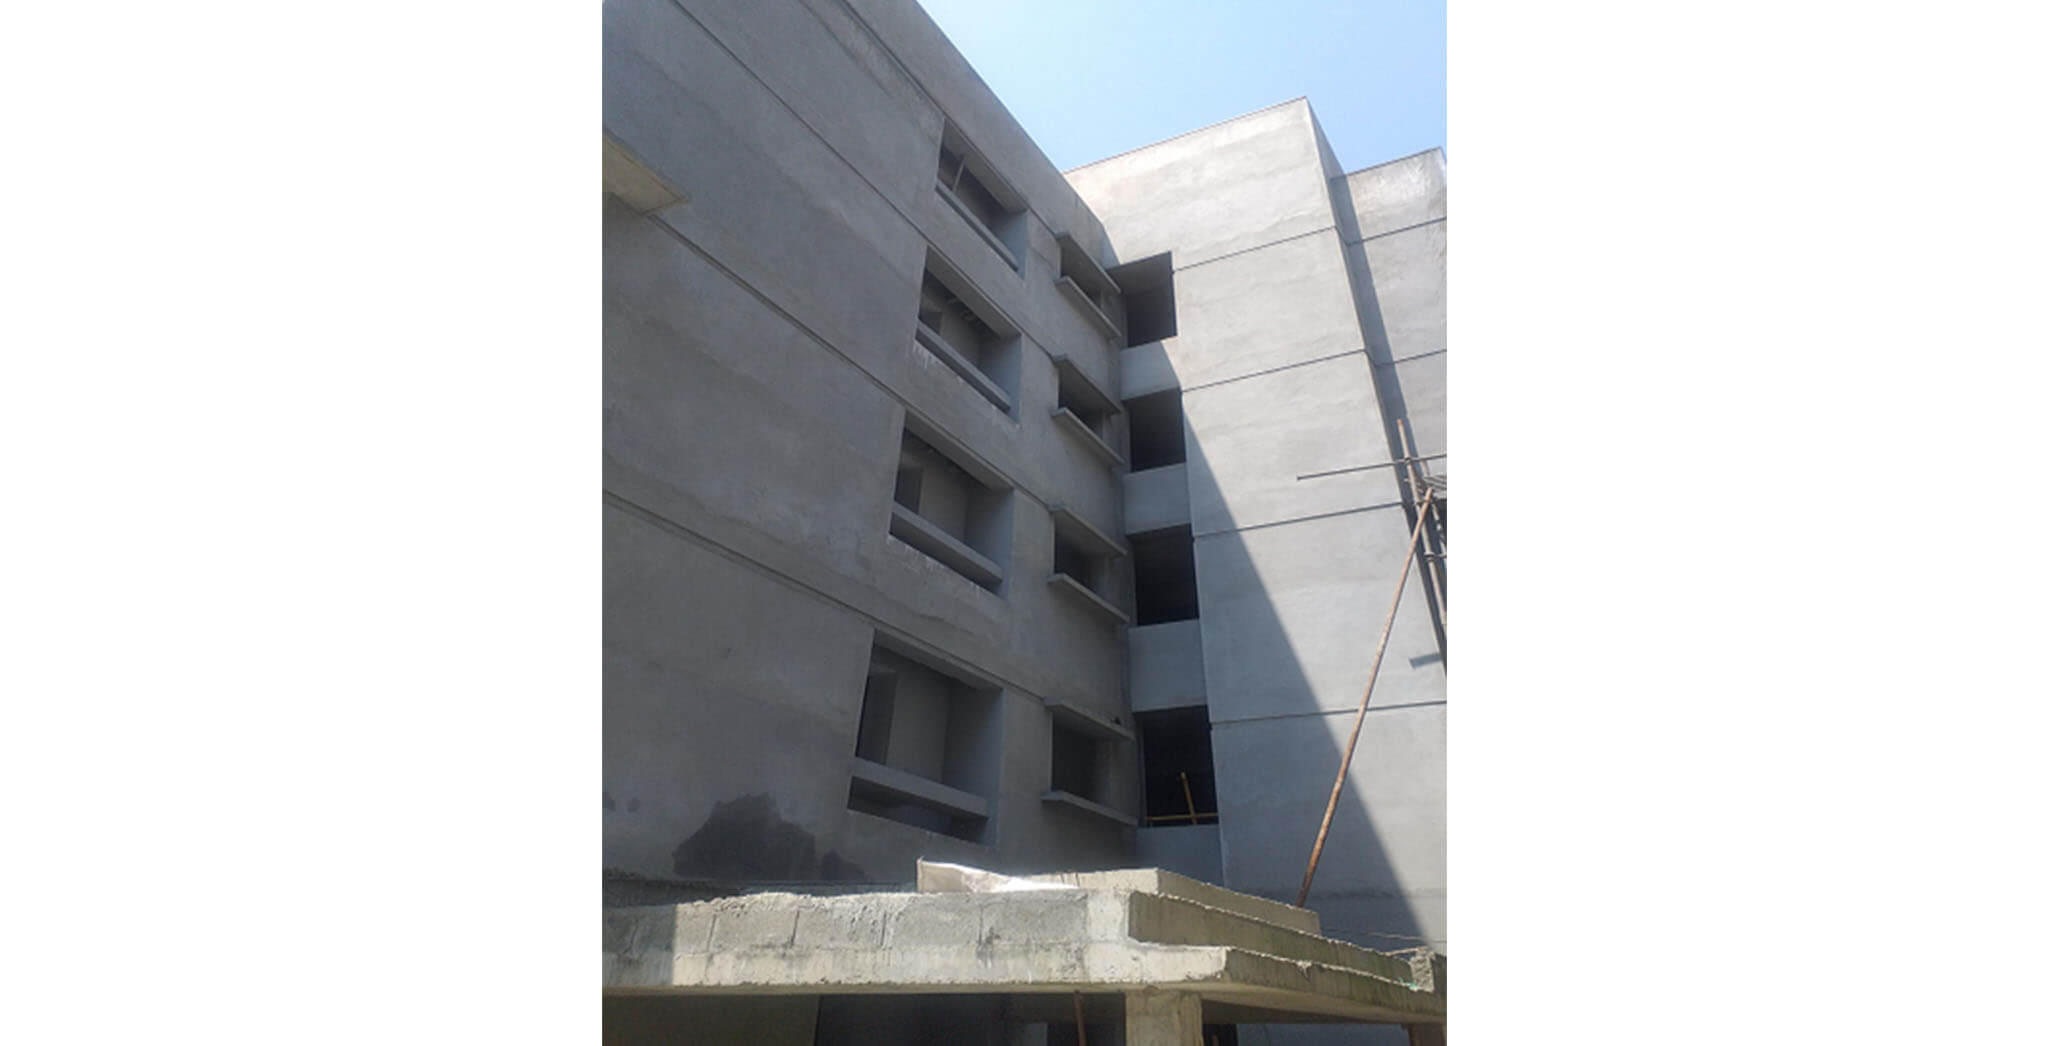 Feb 2021 - Towards Podium side view: M Block—External plastering works completed